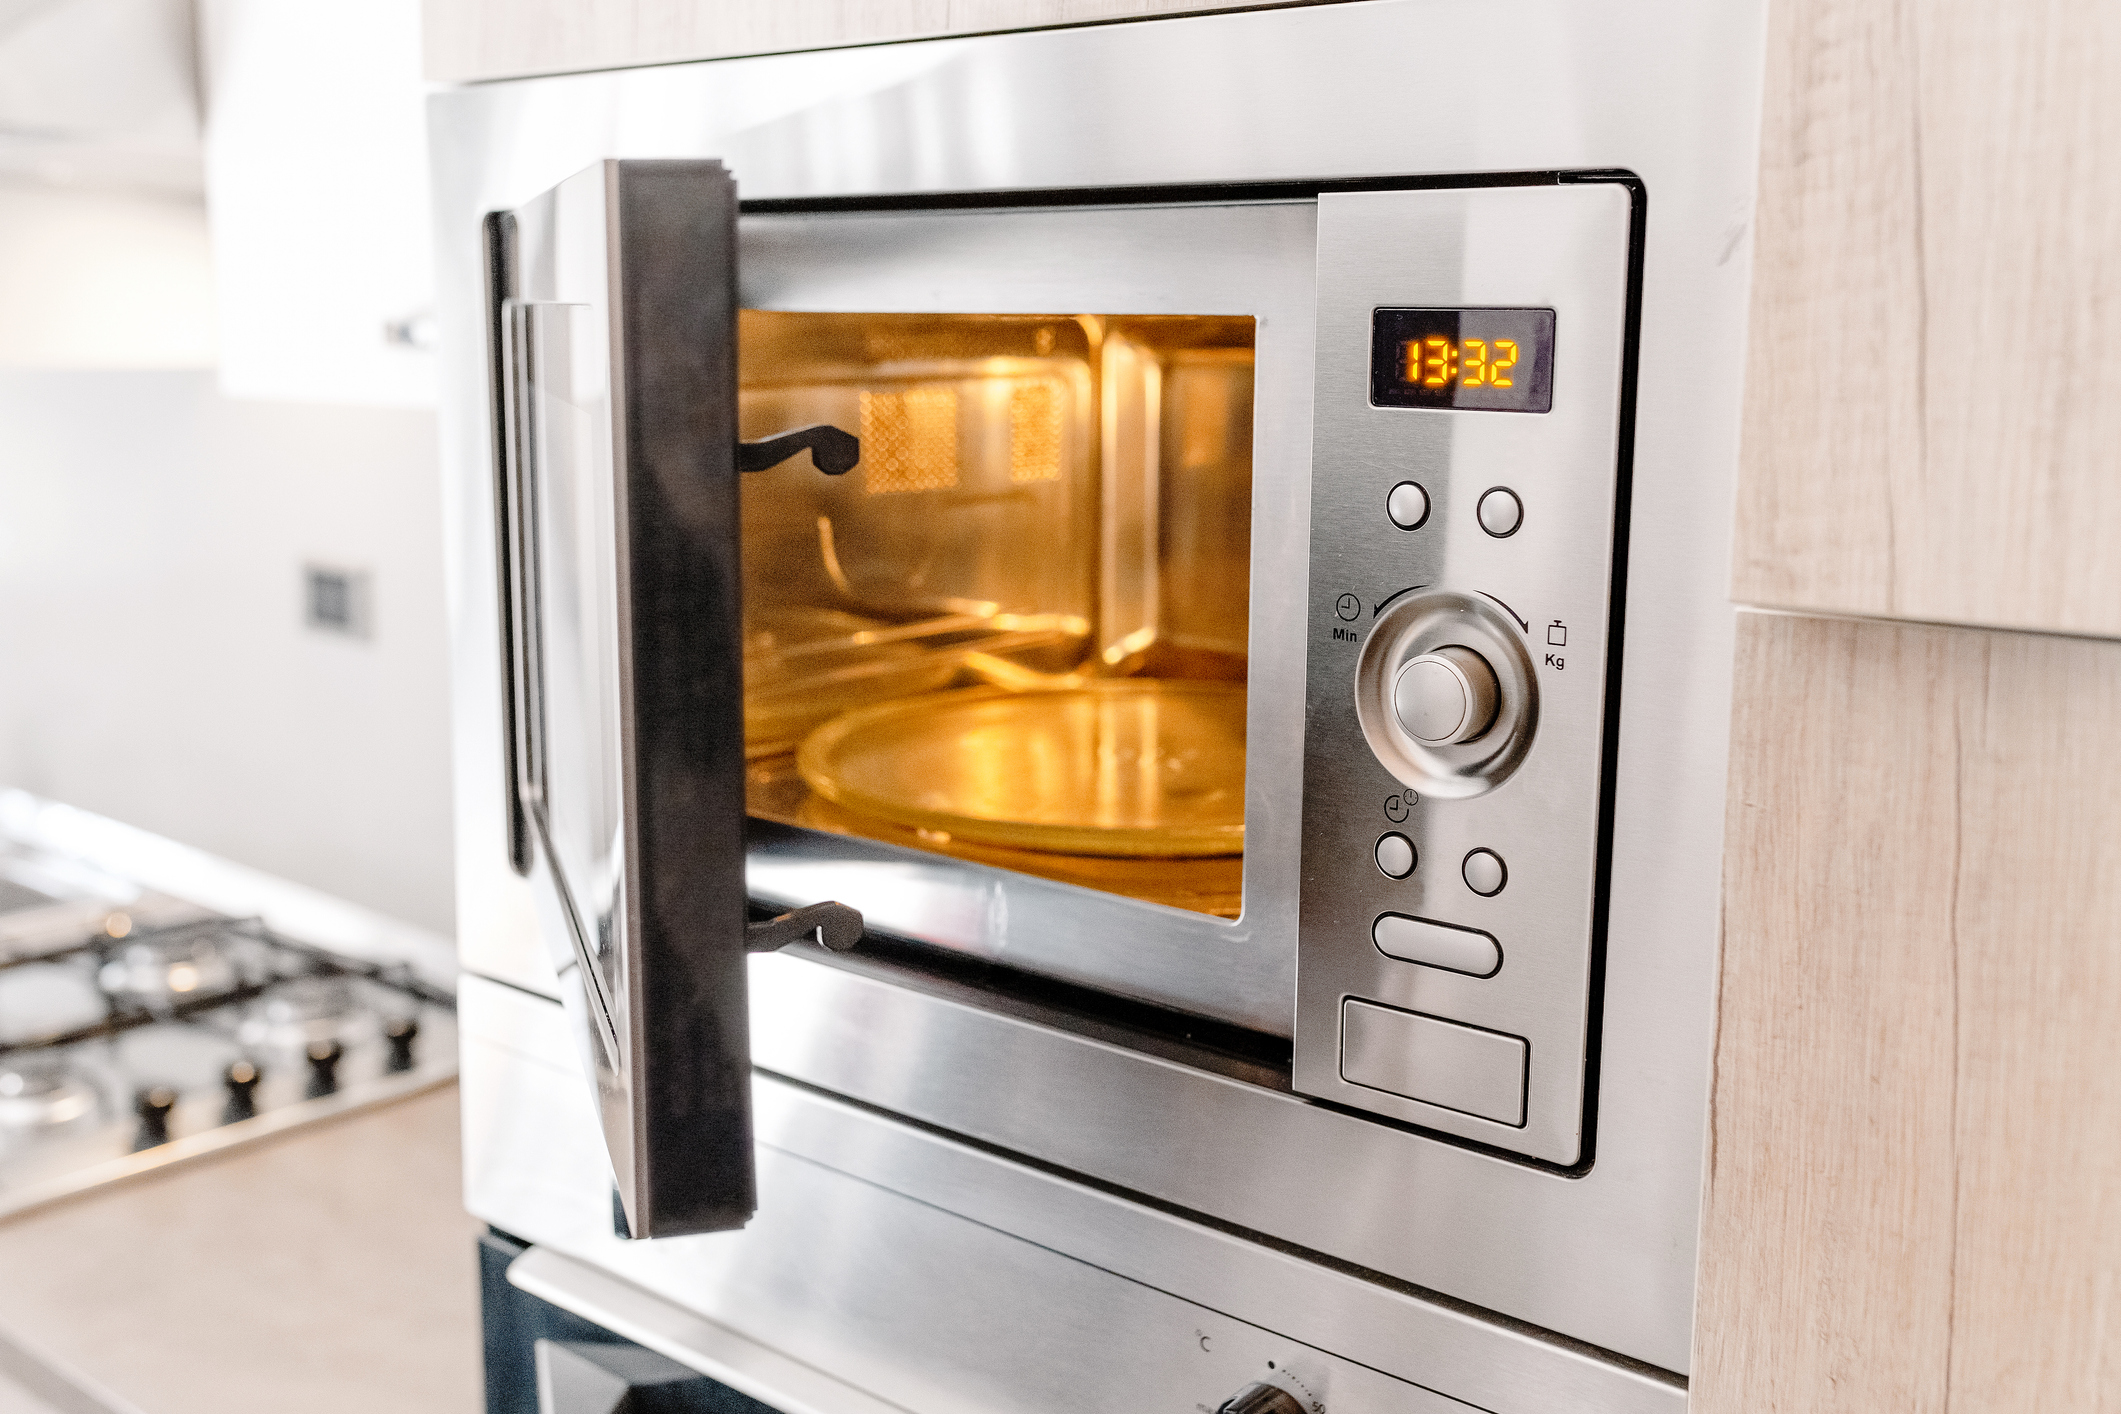 Modern kitchen microwave oven